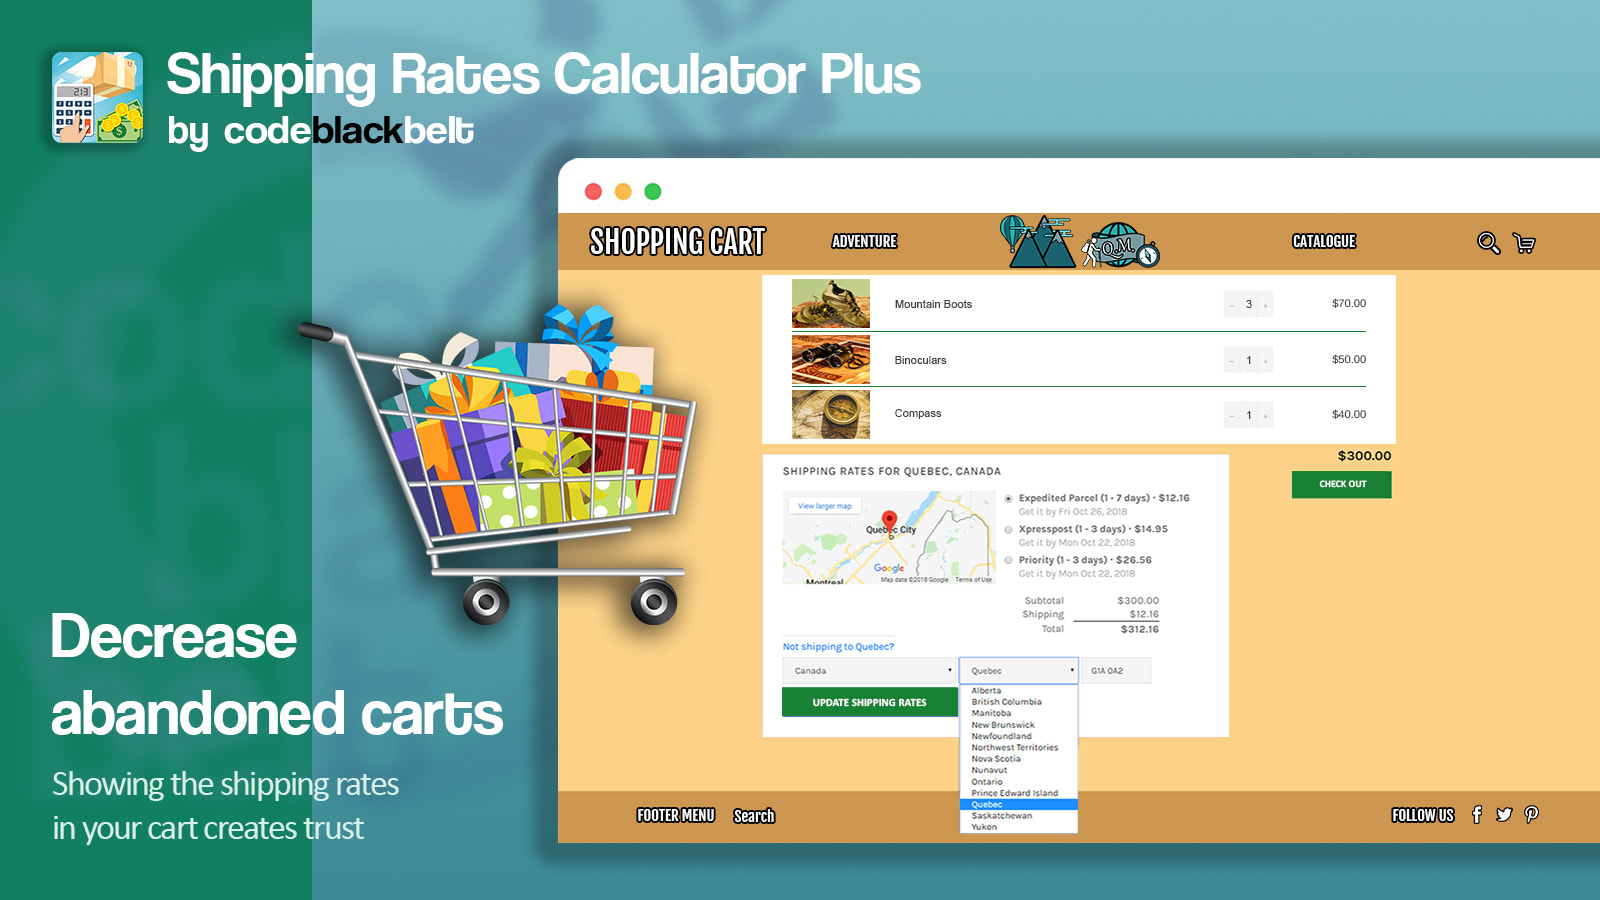 Showing the shipping rates in your cart creates trust